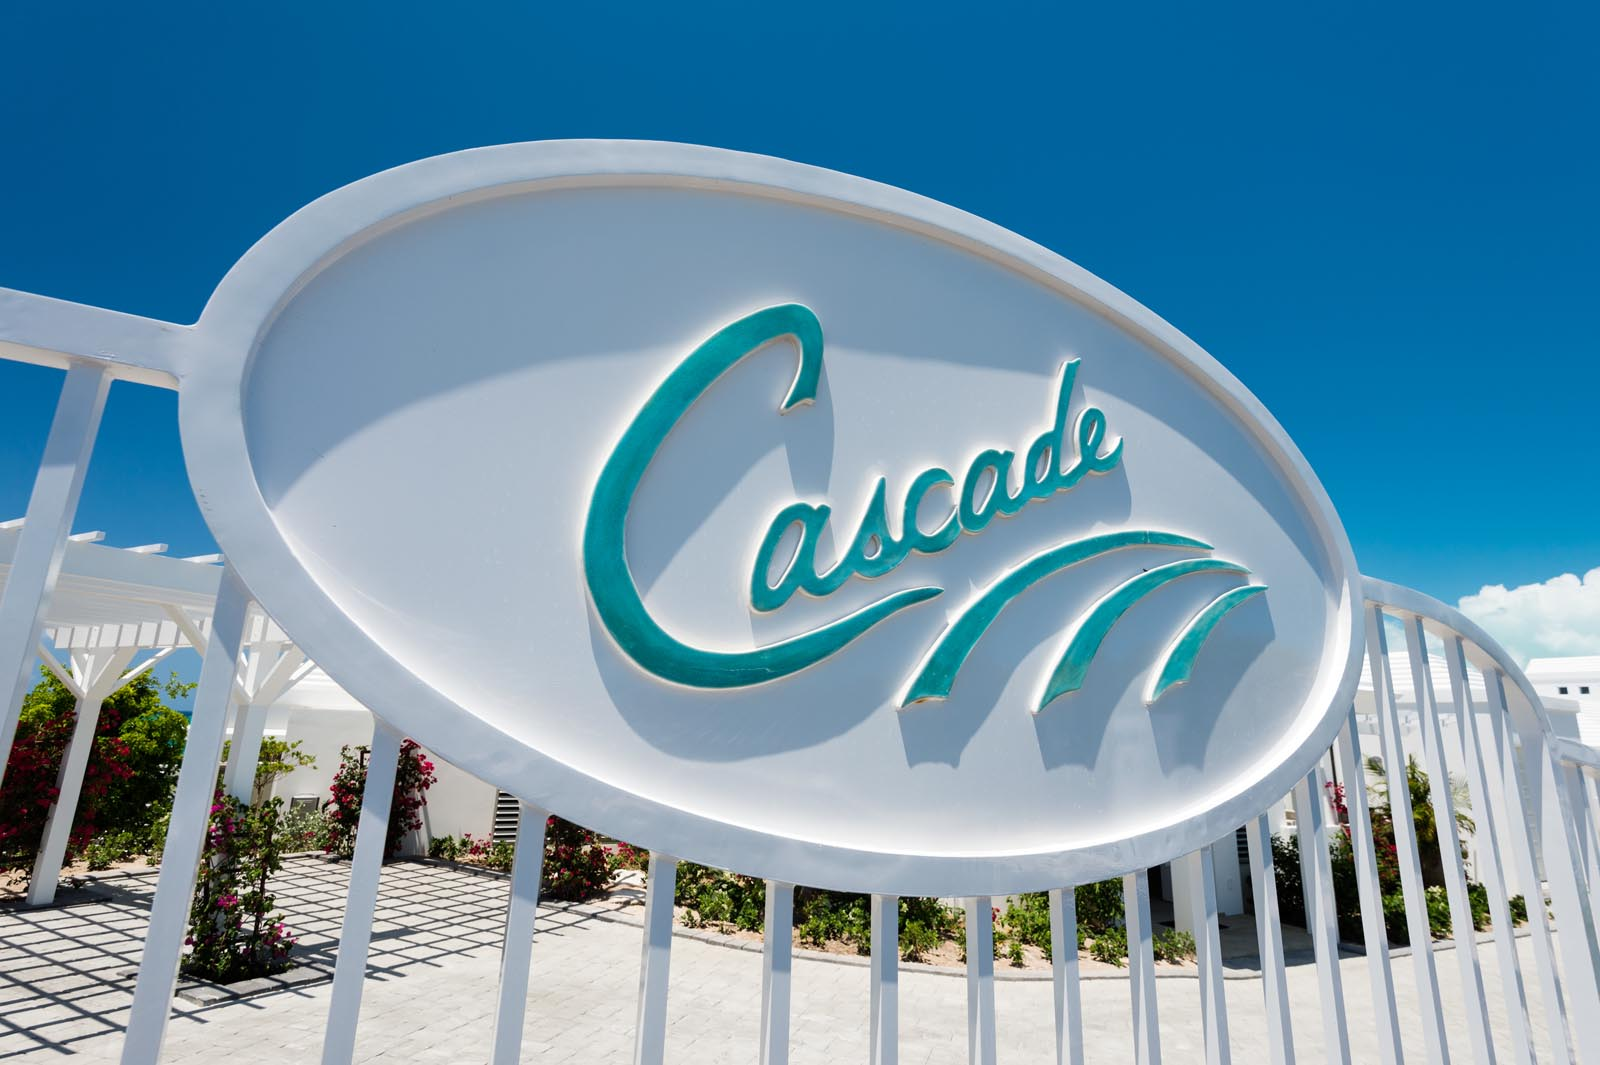 Villa Cascade, Babalua Beach, Providenciales (Provo) in the beautiful by nature Turks and Caicos Islands